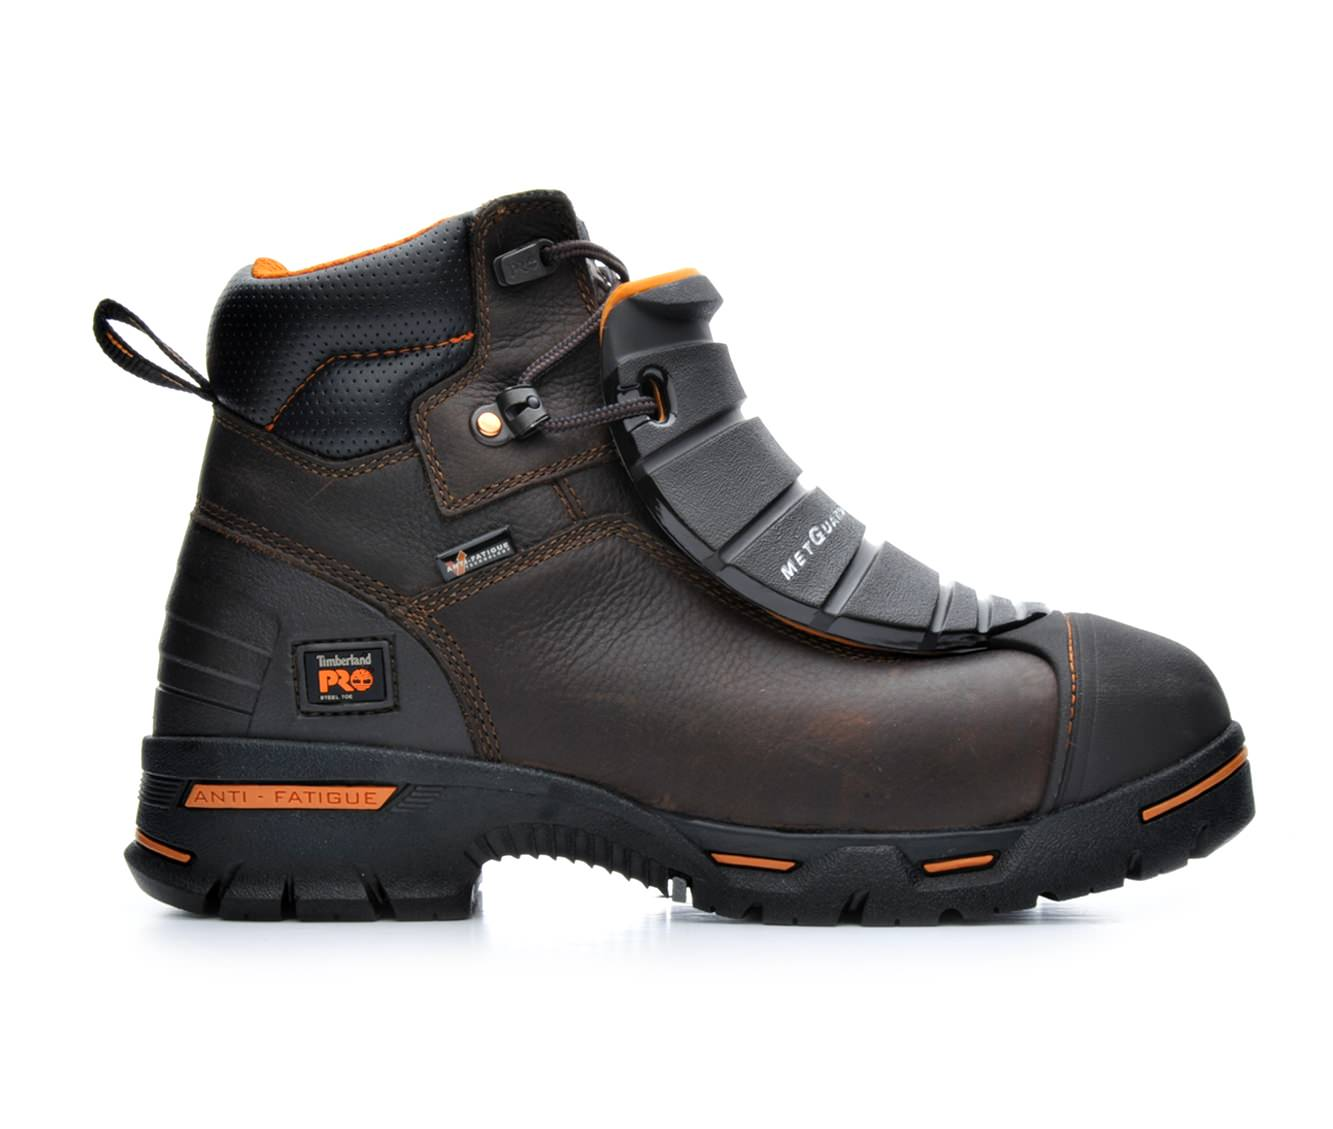 Timberland Pro A172T Endurance Steel Toe Met Guard Men's Boots (Brown Leather)